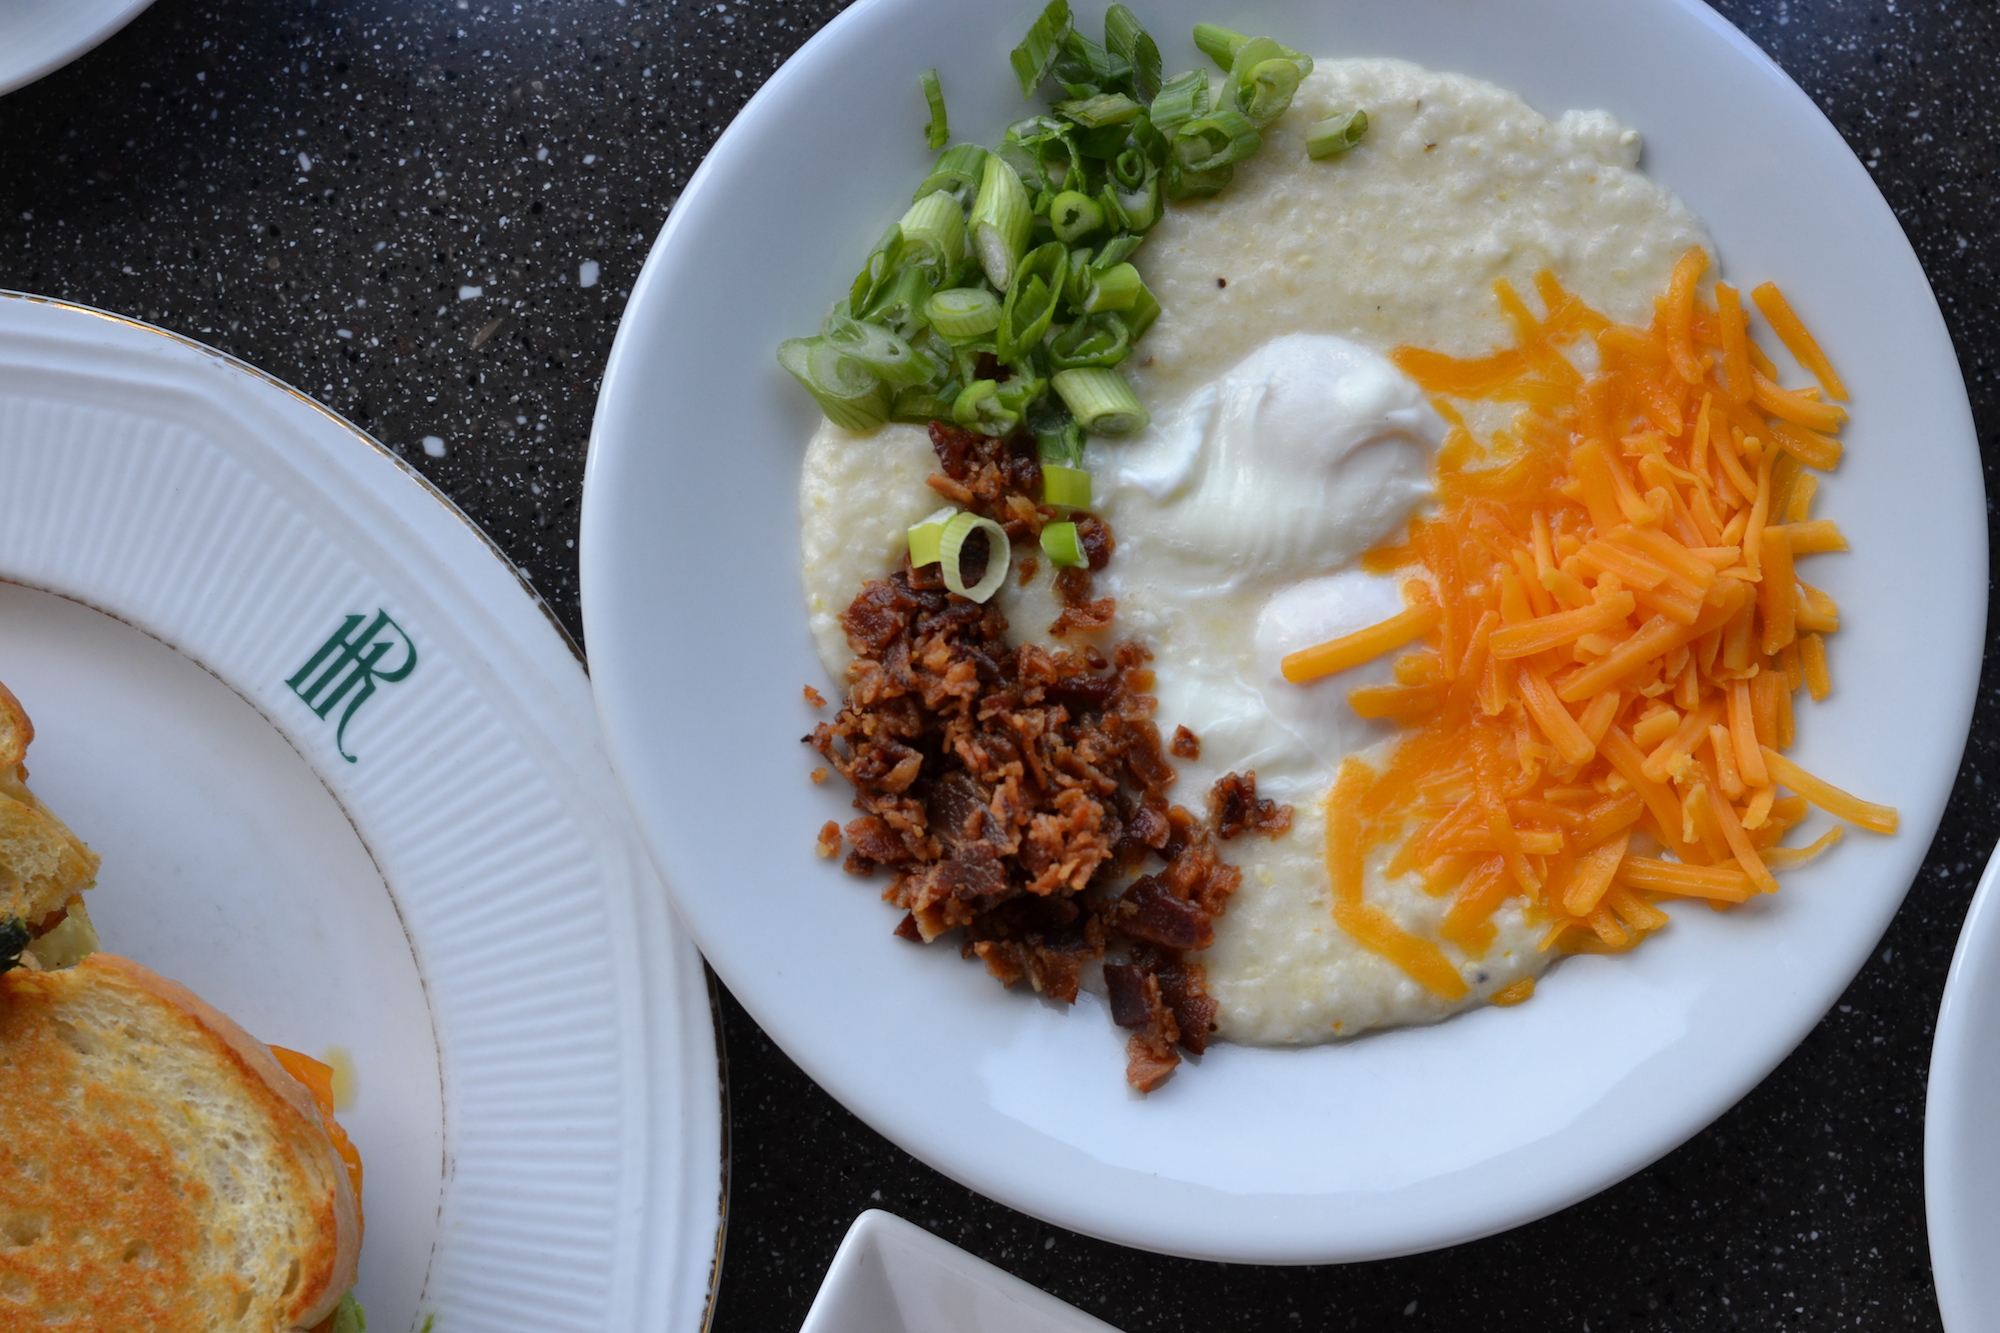 Hotel Roanoke Breakfast Grits Bowl